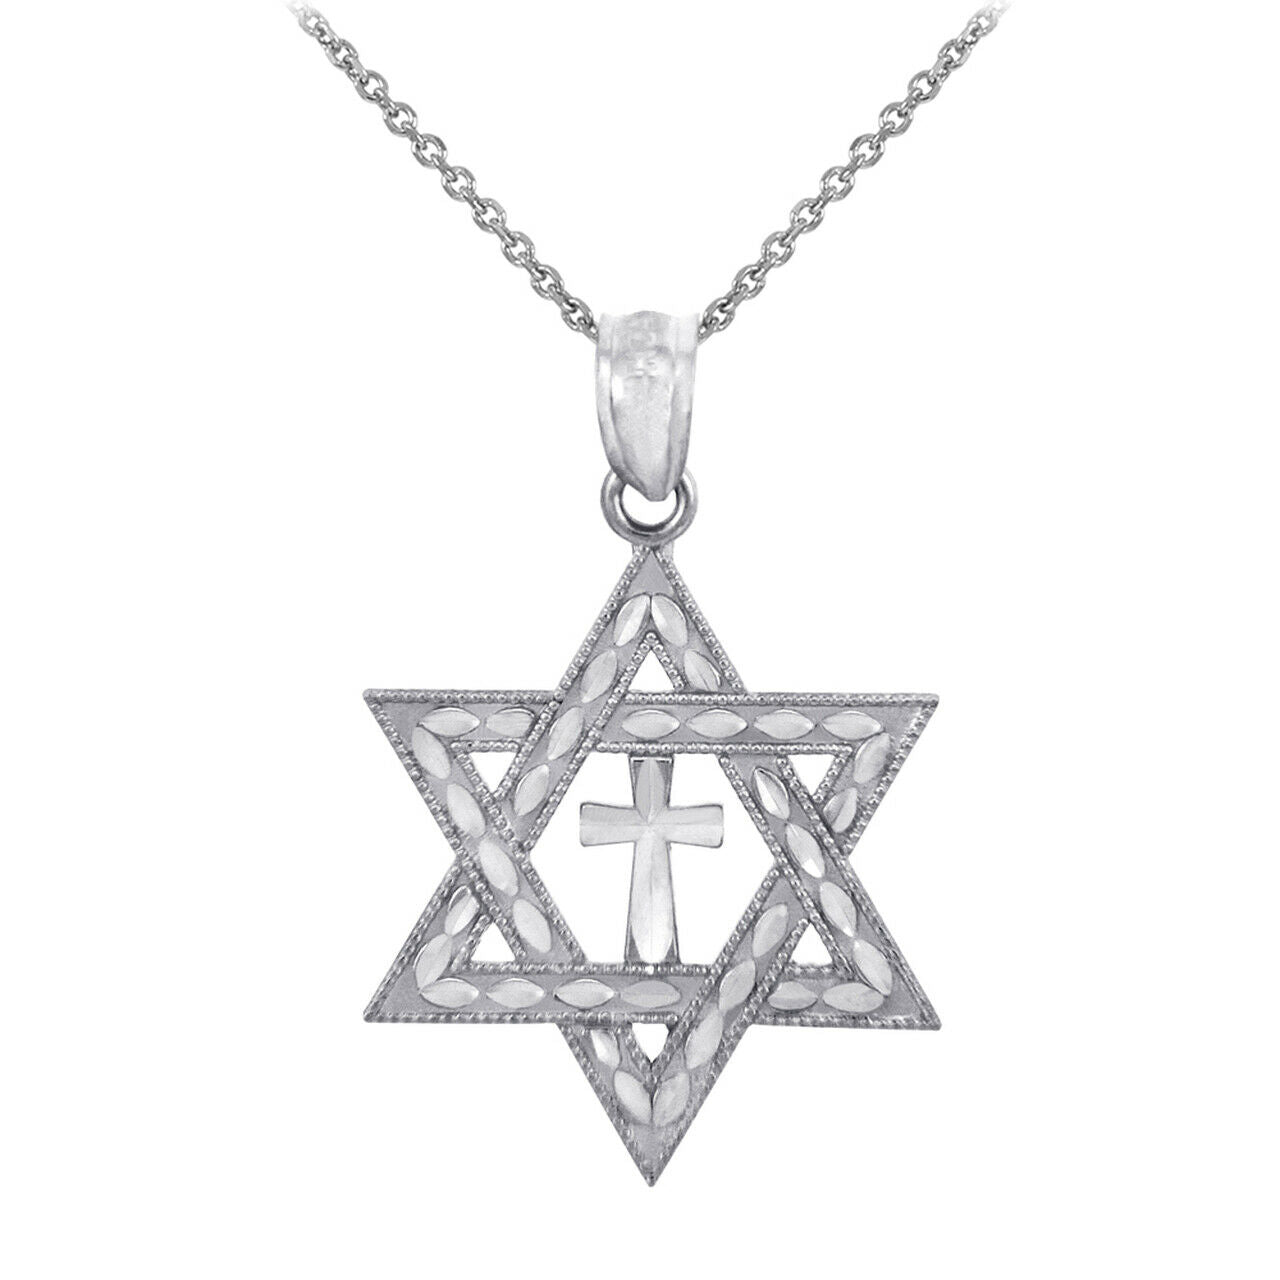 Fine Sterling Silver Jewish Charm/Pendant Necklace- Silver Star Cross of David